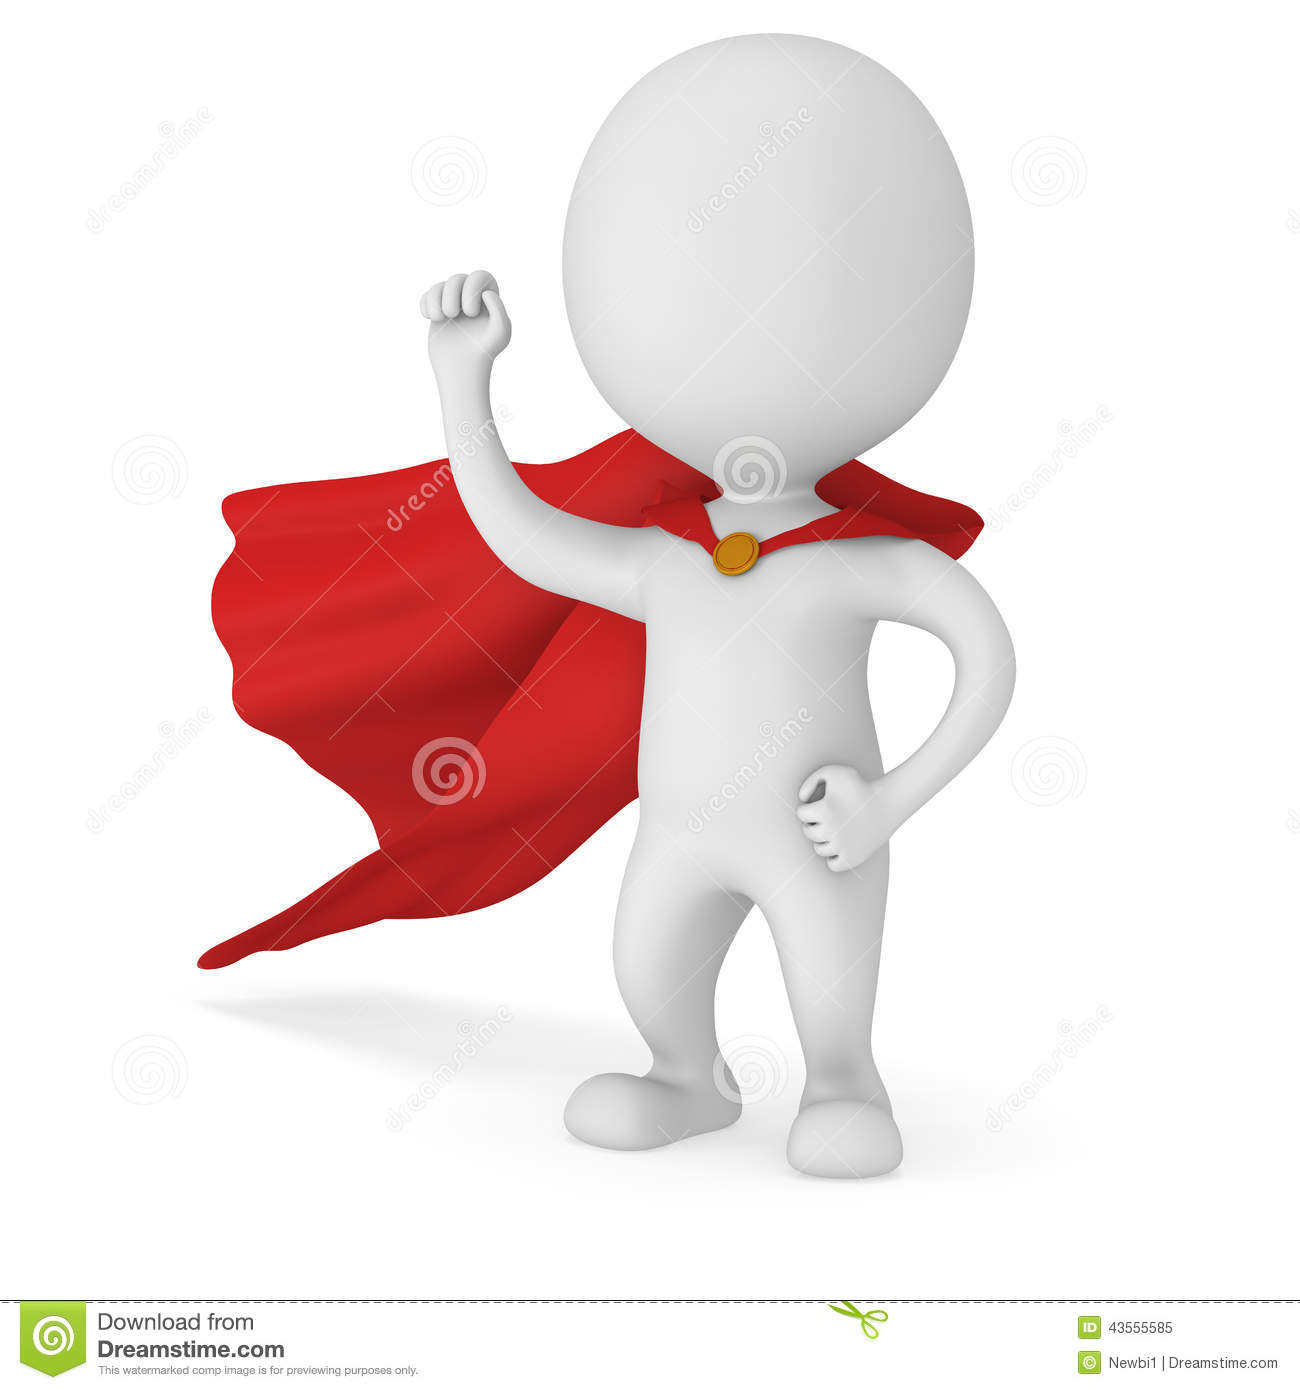 D Man Brave Superhero With Red Cloak Stock Illustration